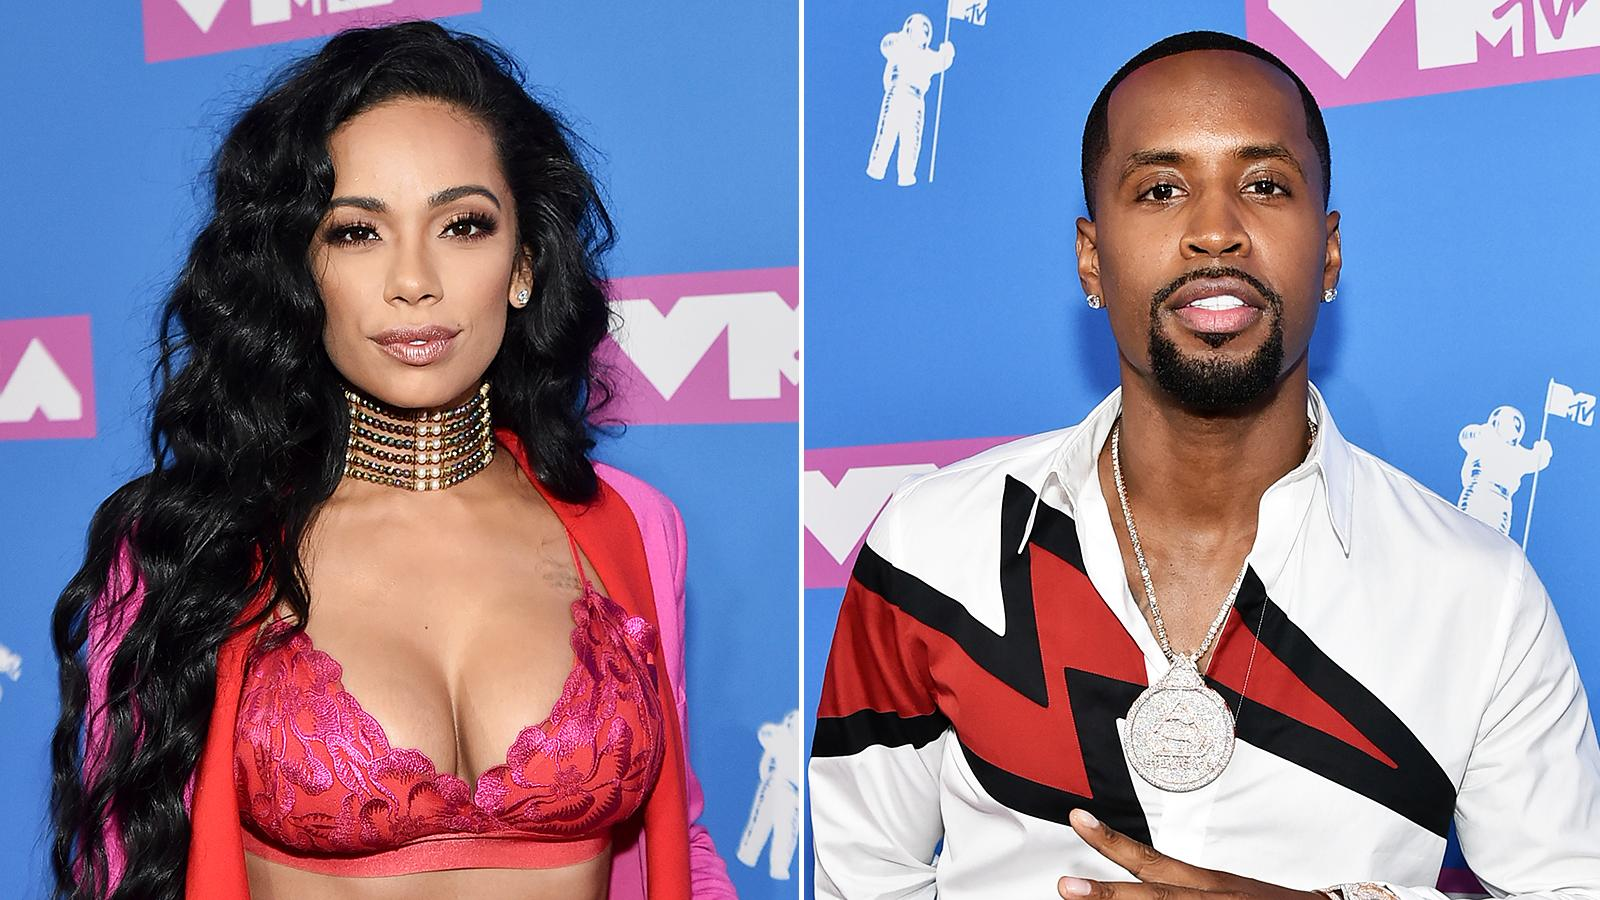 Safaree's Video Featuring Erica Mena Riding With Him Has Fans Laughing Their Hearts Out And Congratulating Her